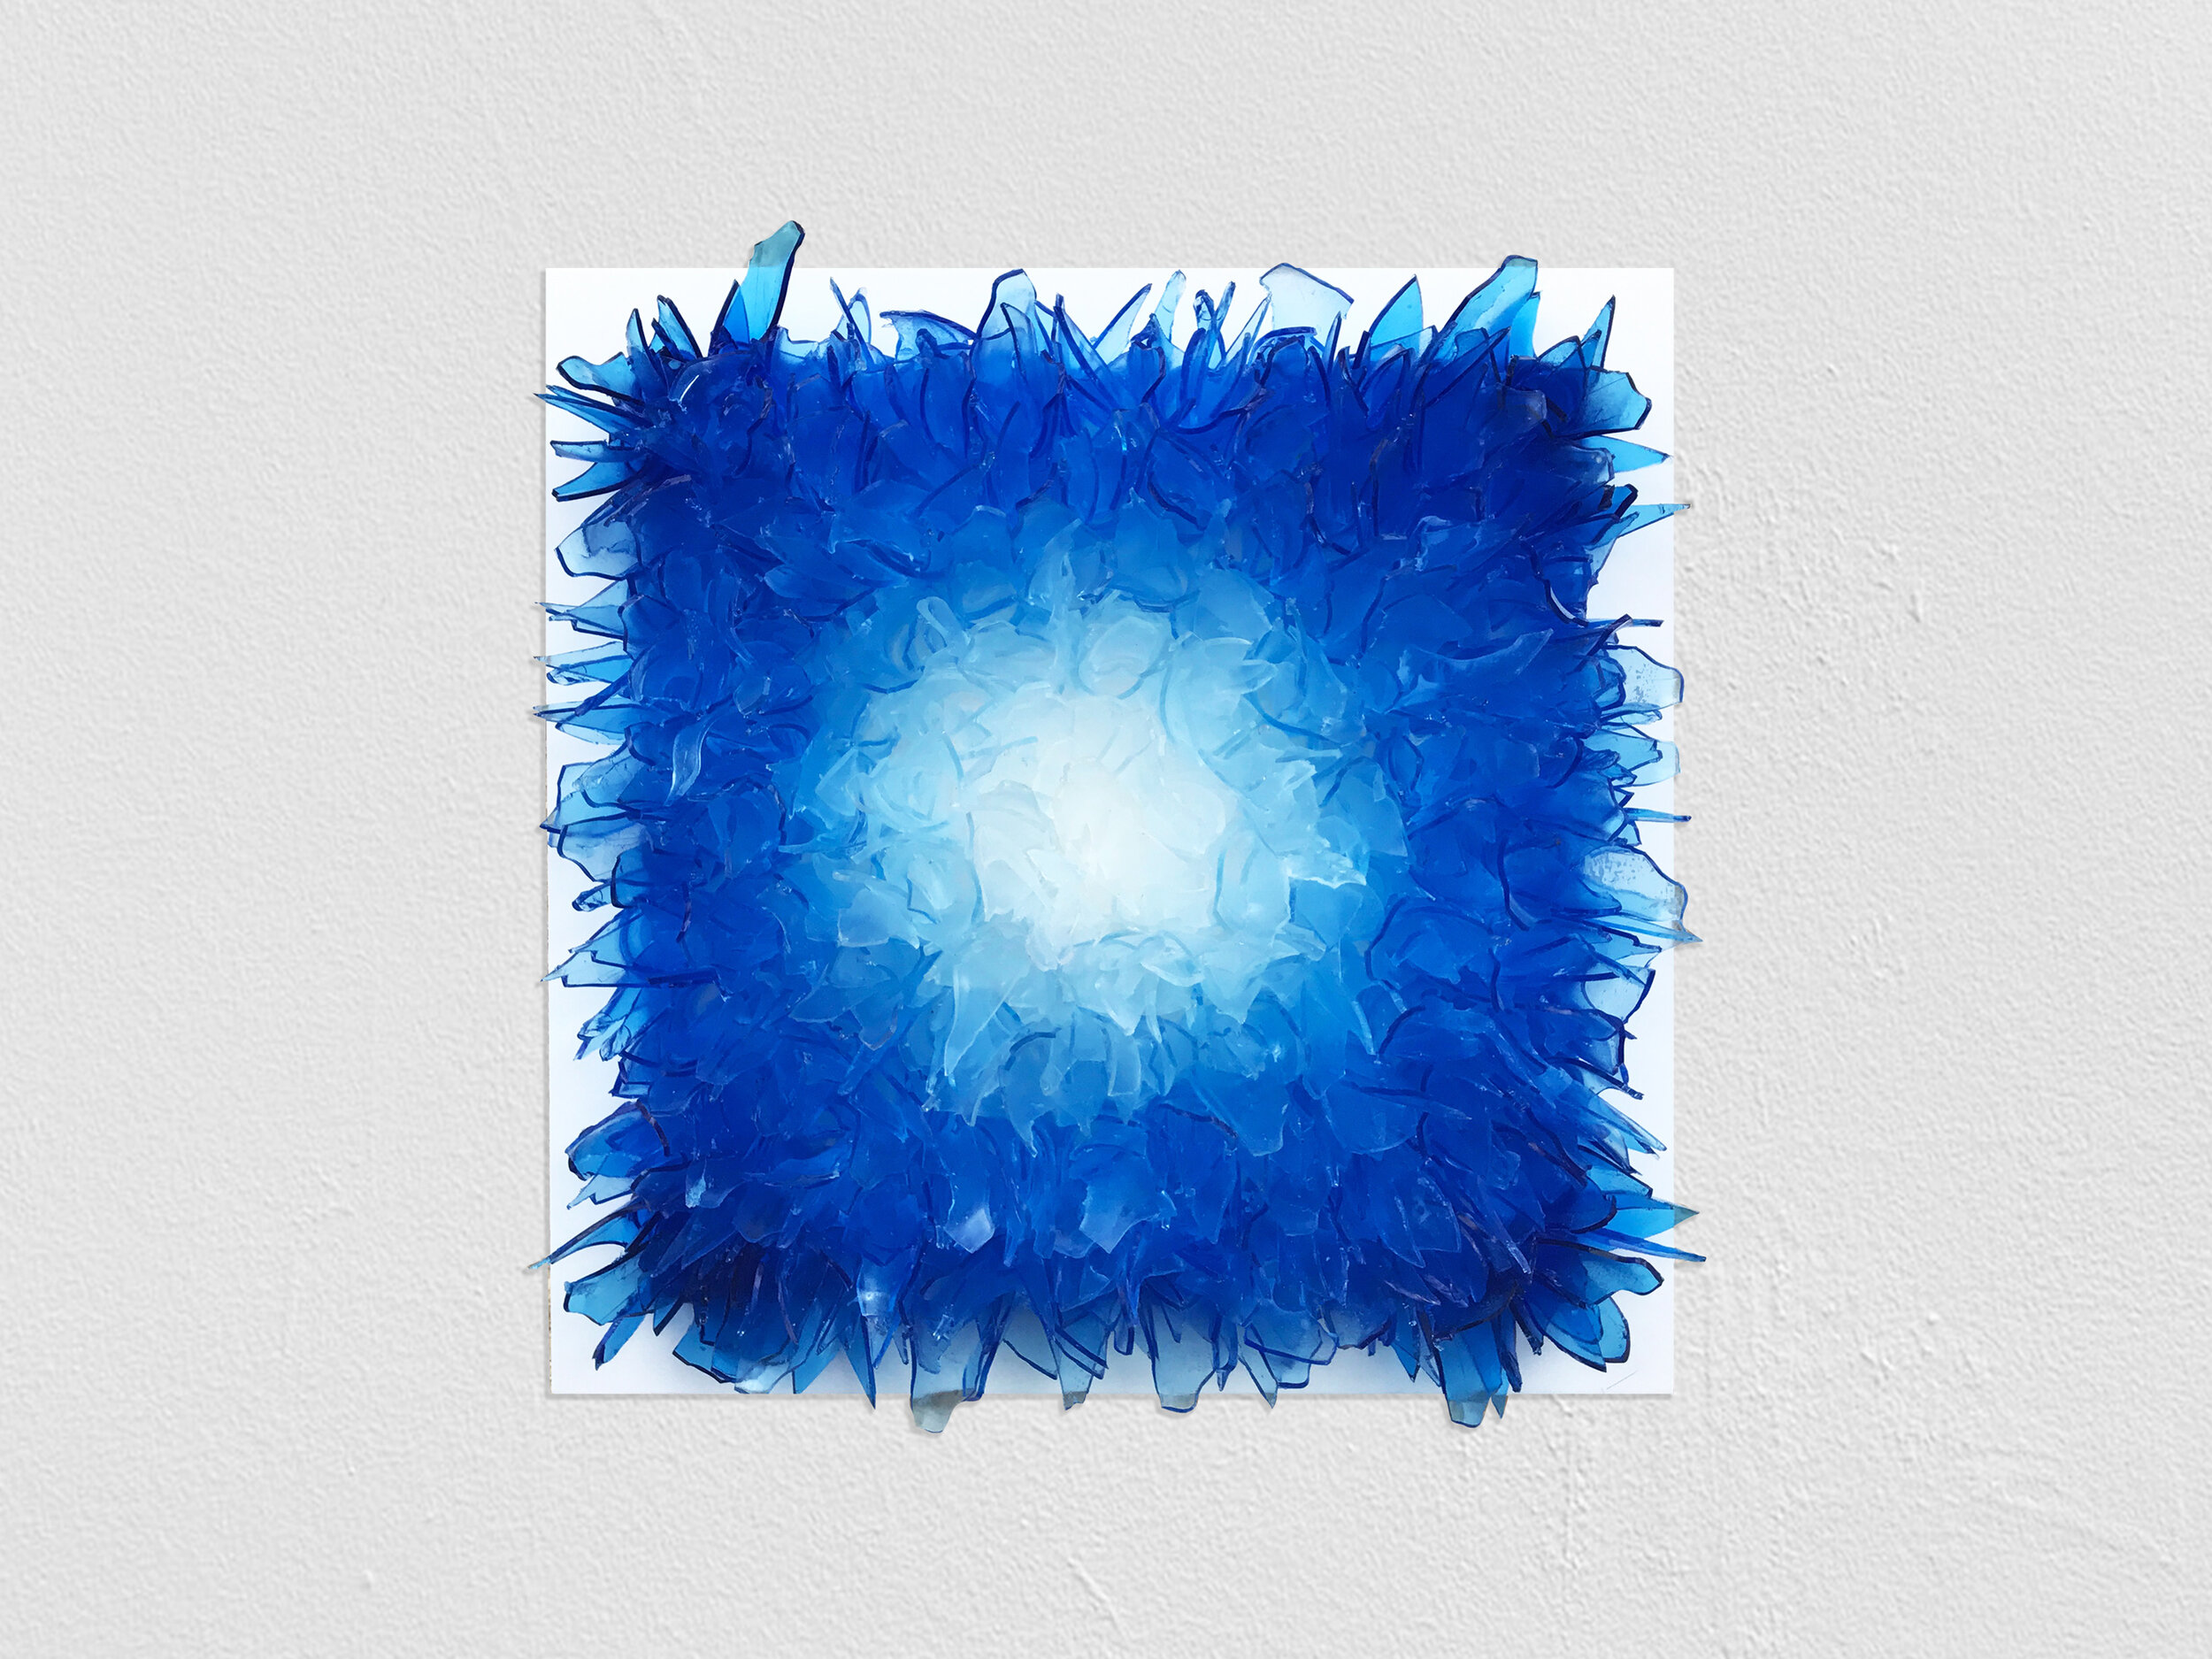 shattered in blue - 800 sculpted & hand cast rubber shards of glass